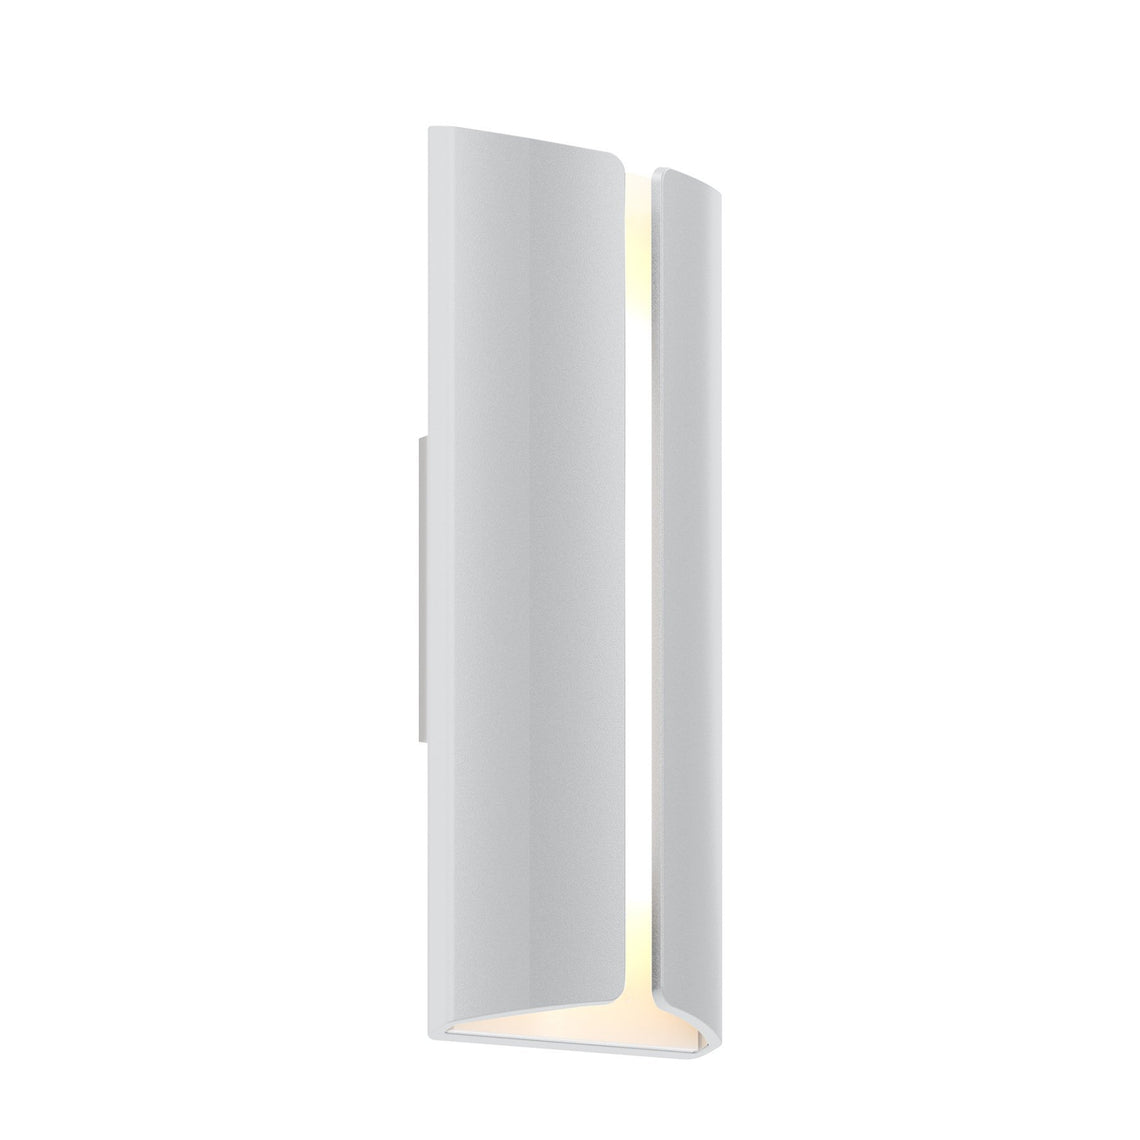 LED Wall Light Fixture - 16.75W - 1460 Lm - Dimmable - 3000K Warm White Wall Sconce